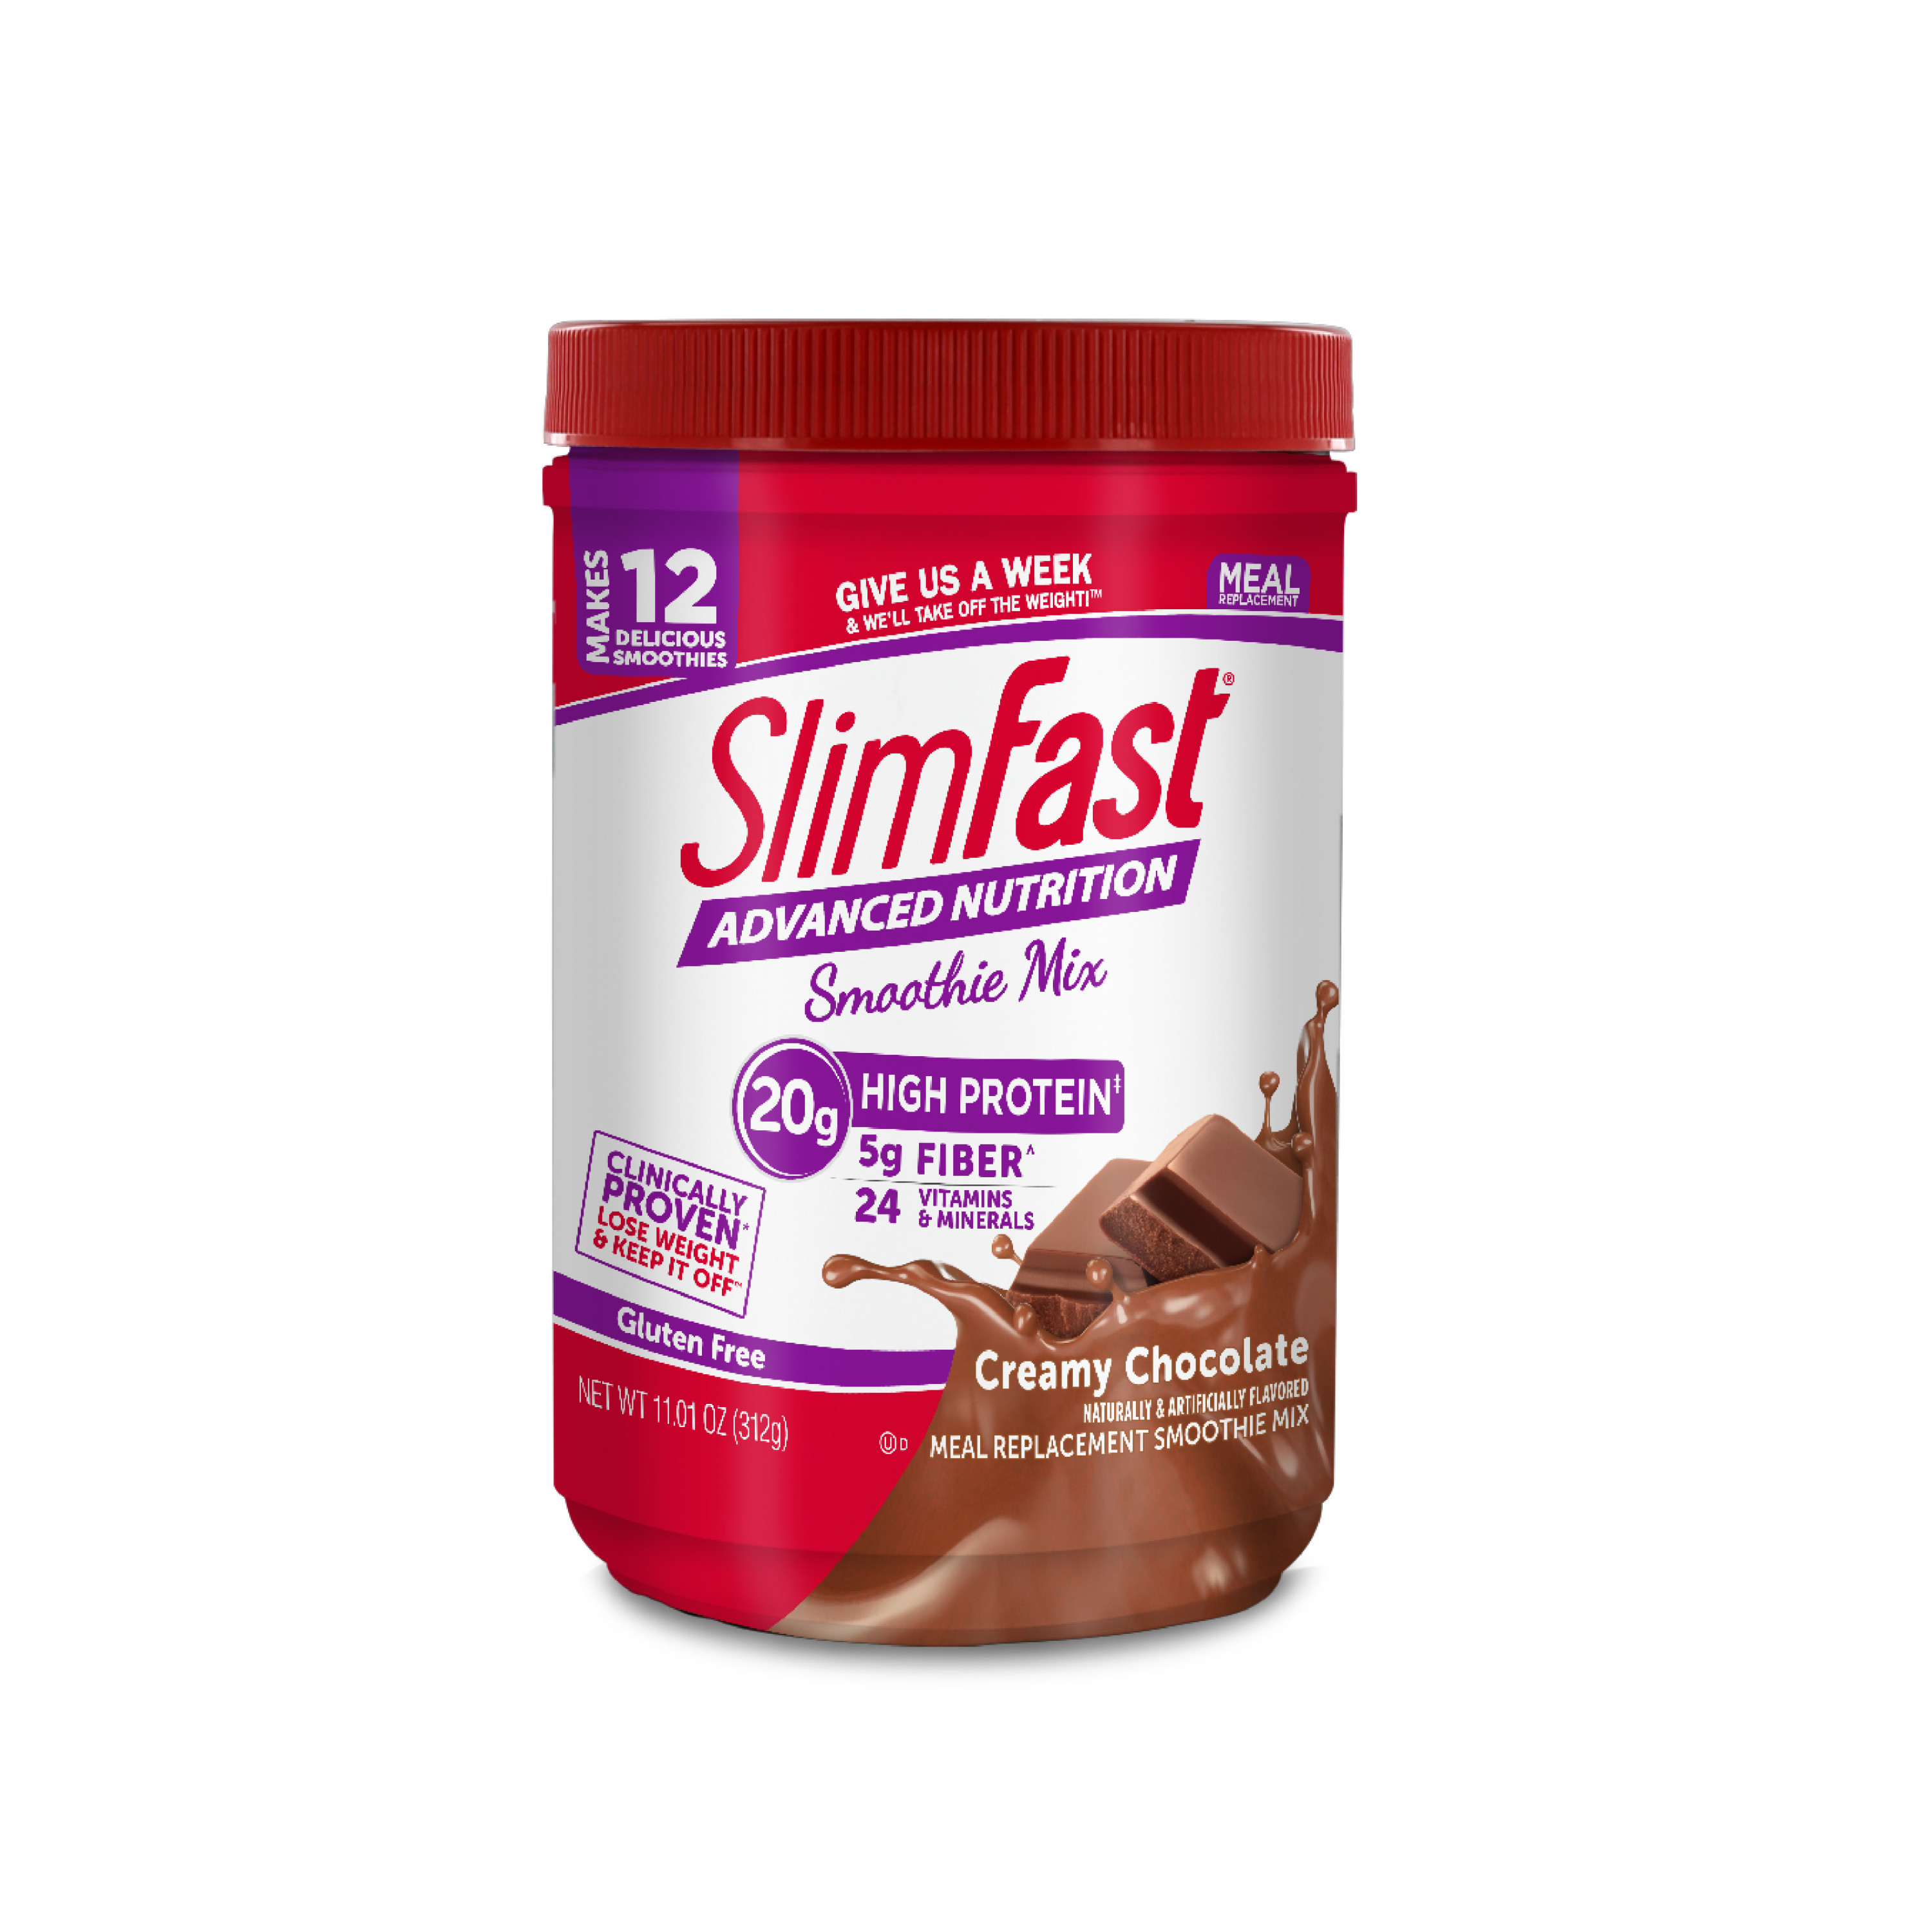 SlimFast Advanced Nutrition Smoothie Mix, Creamy Chocolate, 11.01oz (12 servings)